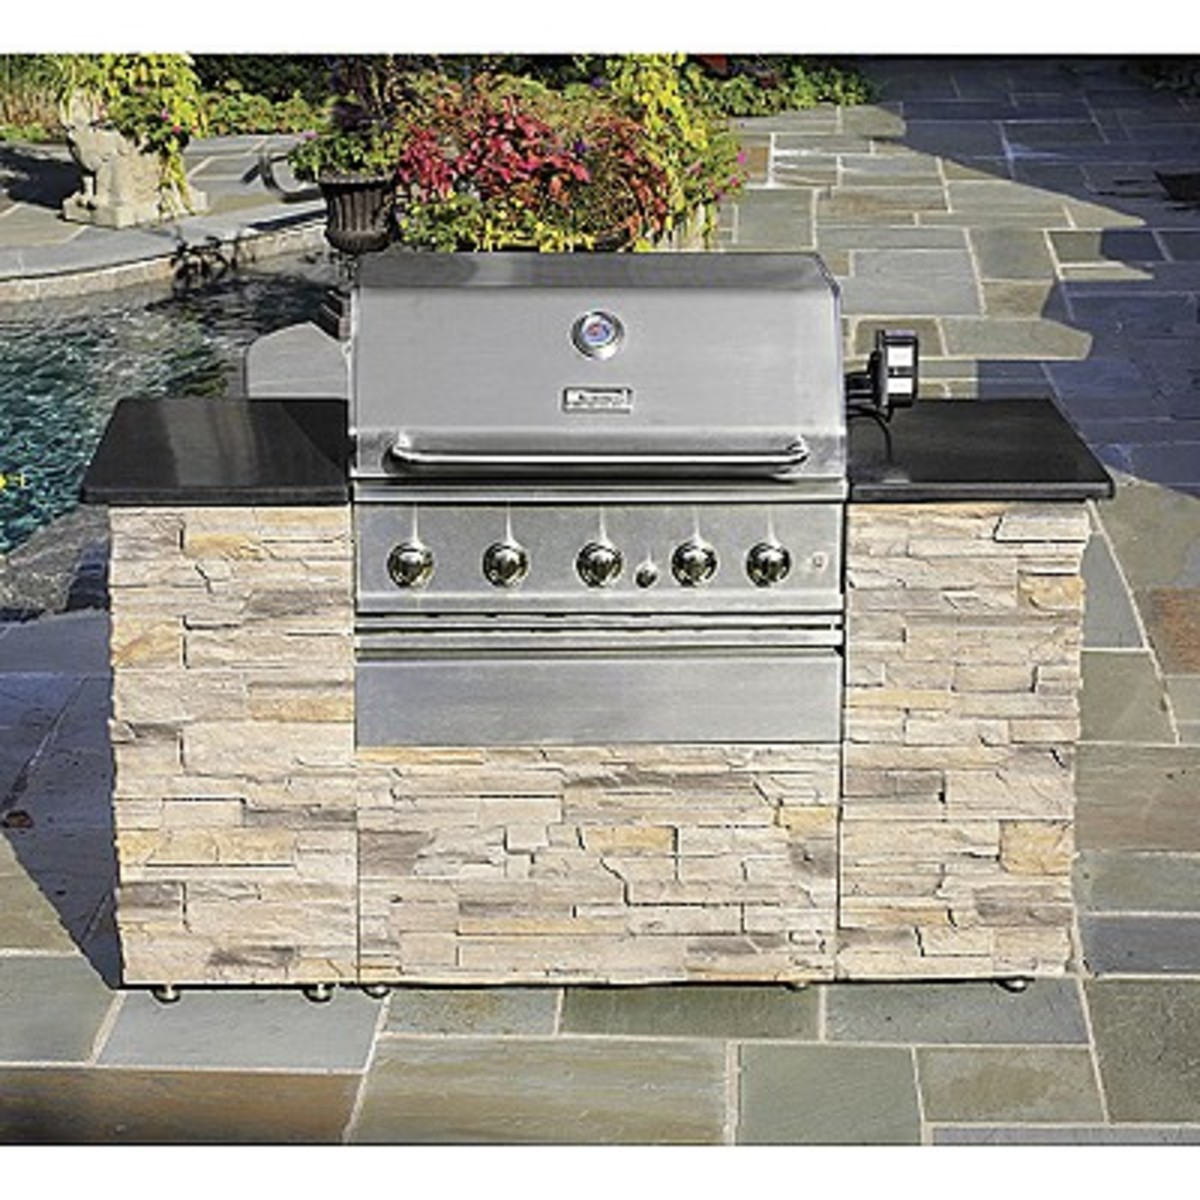 Outdoor kitchen Kenmore models can be assembled for as big or as small a grill island you desire starting with model 07116655000